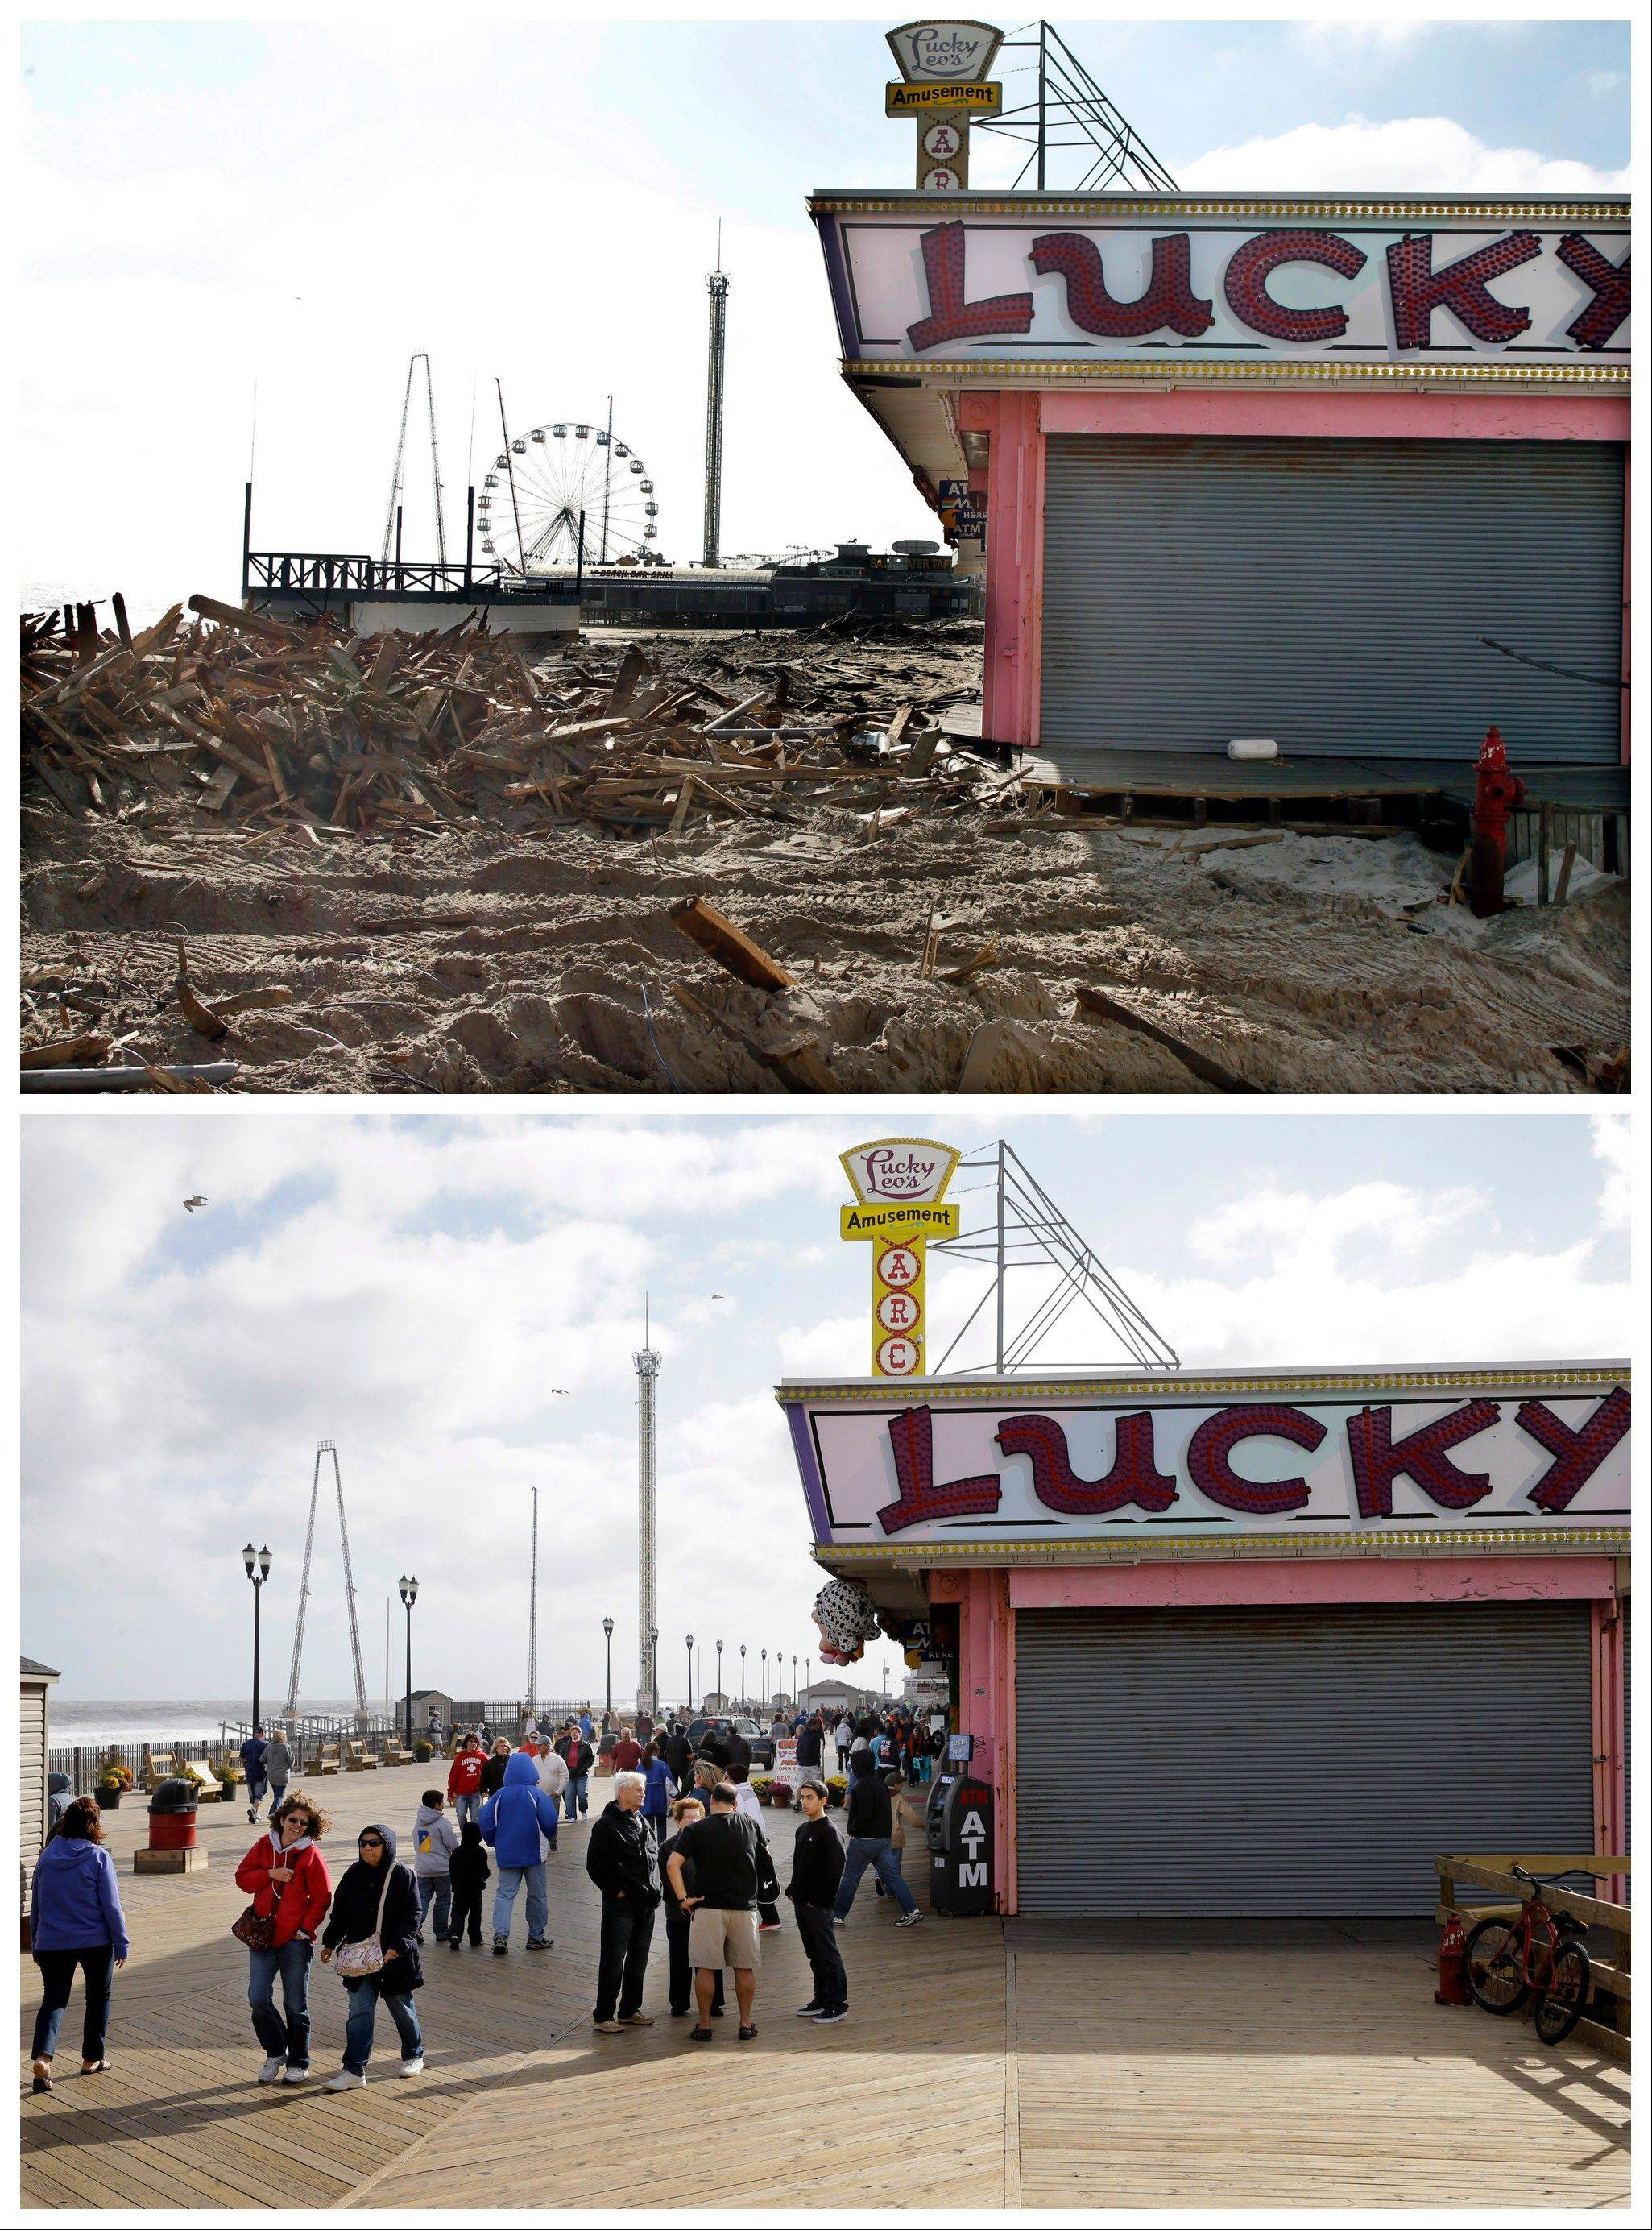 This combination of photos from Nov. 22, 2012, and Sunday, Oct. 13, 2013, shows the differences in a section of the boardwalk in front of Lucky Leo's arcade in Seaside Heights, N.J., from immediately after Superstorm Sandy hit and now nearly a year later.